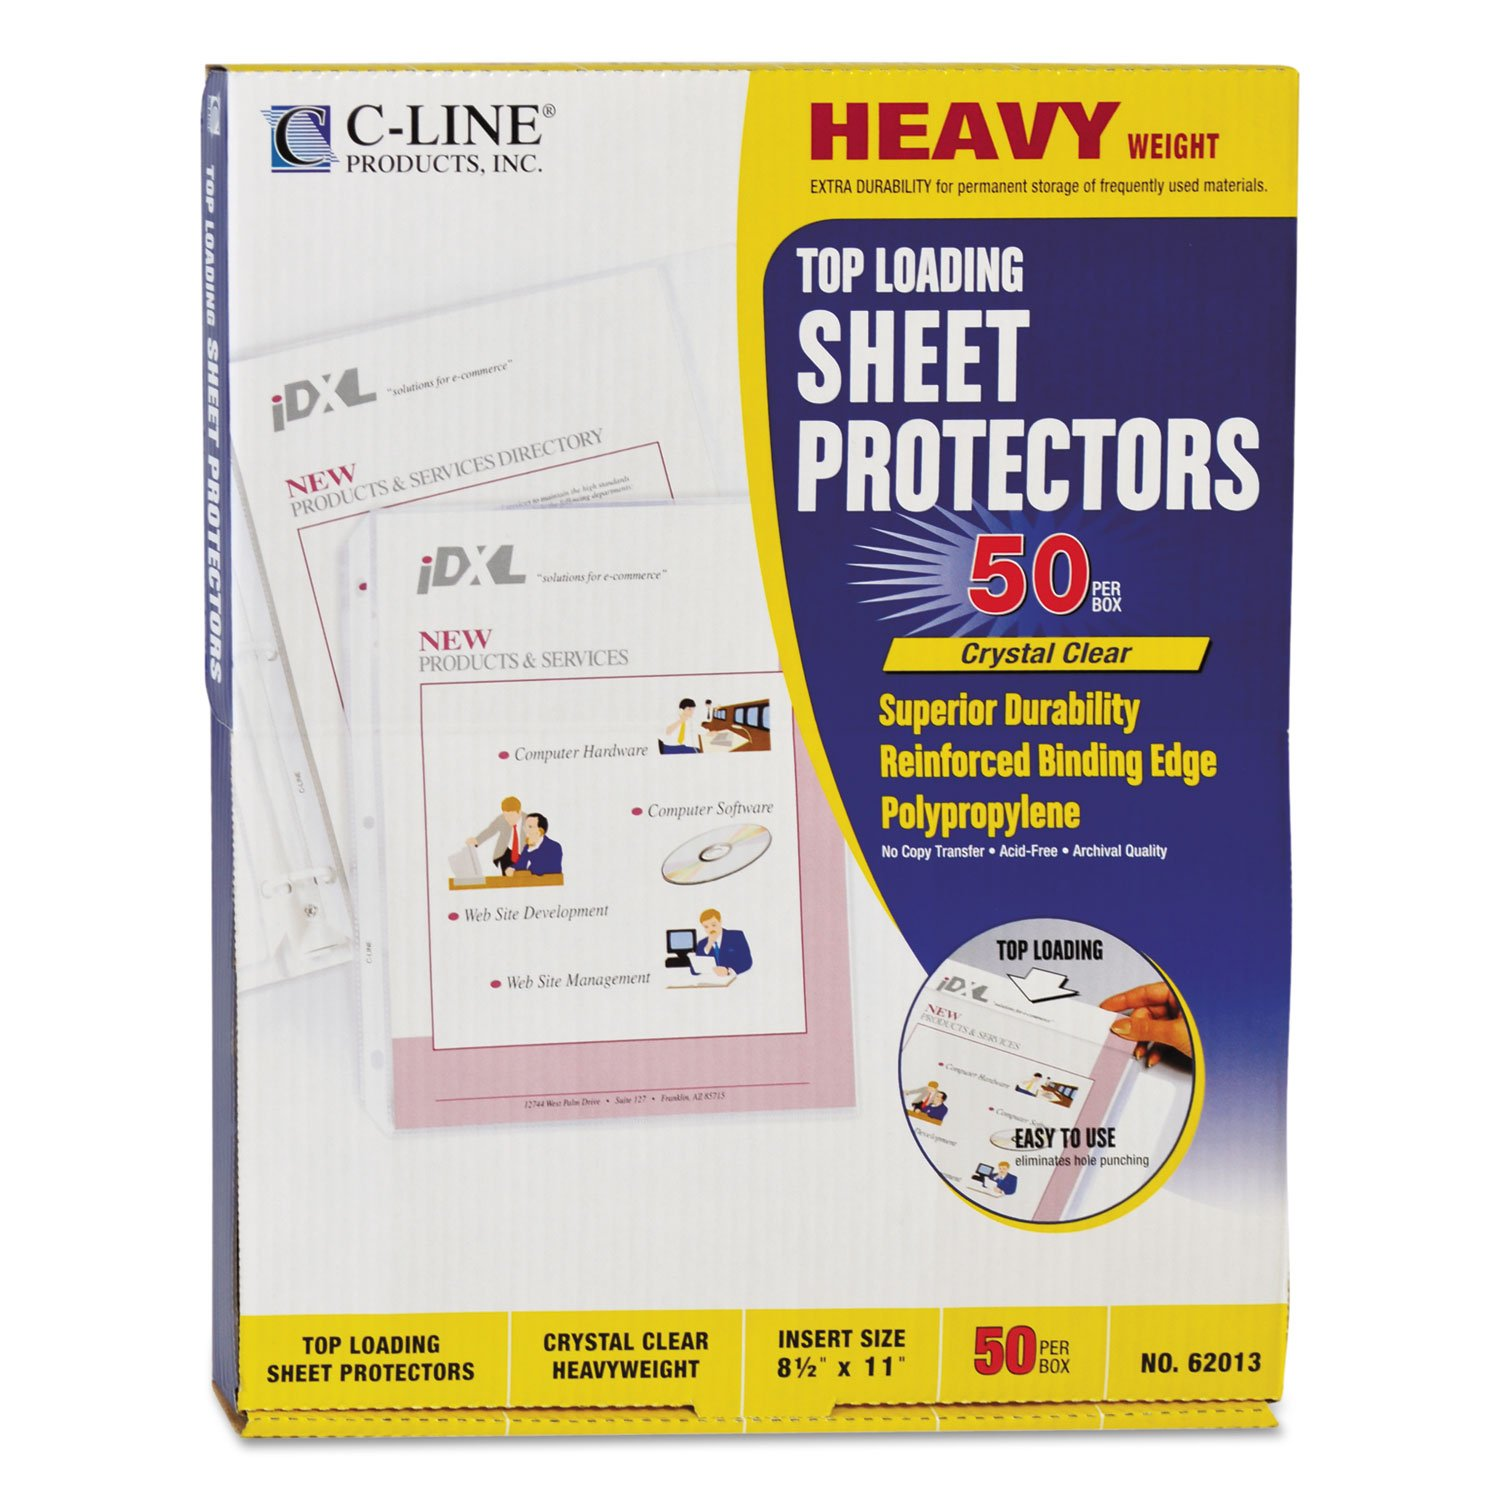 C-Line 62013 Heavyweight Polypropylene Sheet Protector, Clear, 2-Inch, 11 x 8 1/2, 50/BX by C-Line